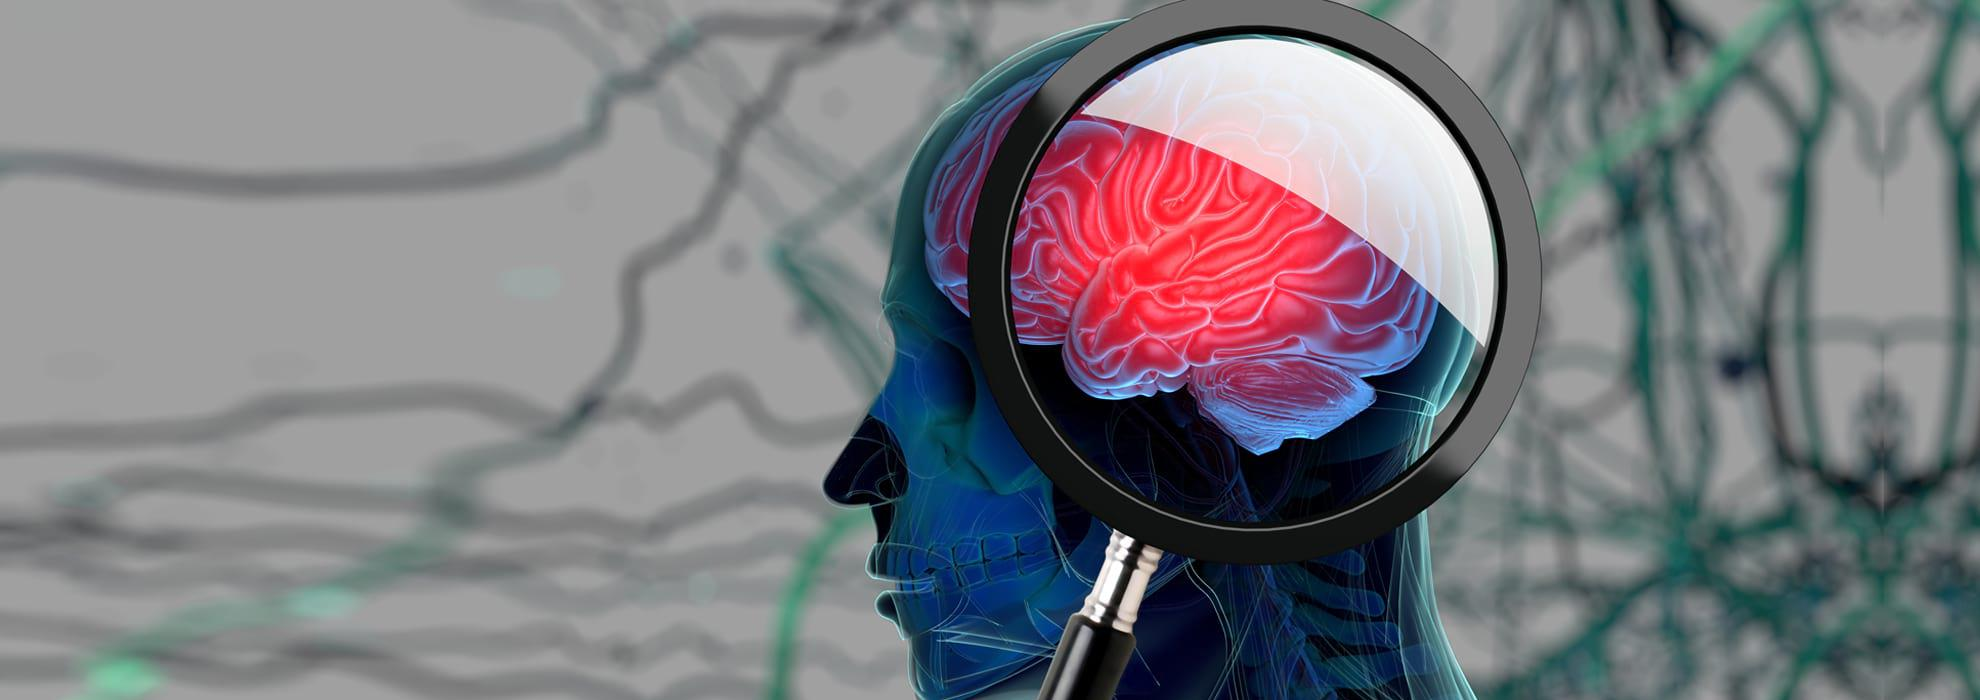 3D image of a person with a magnifying glass exposing the brain and strands in the background.